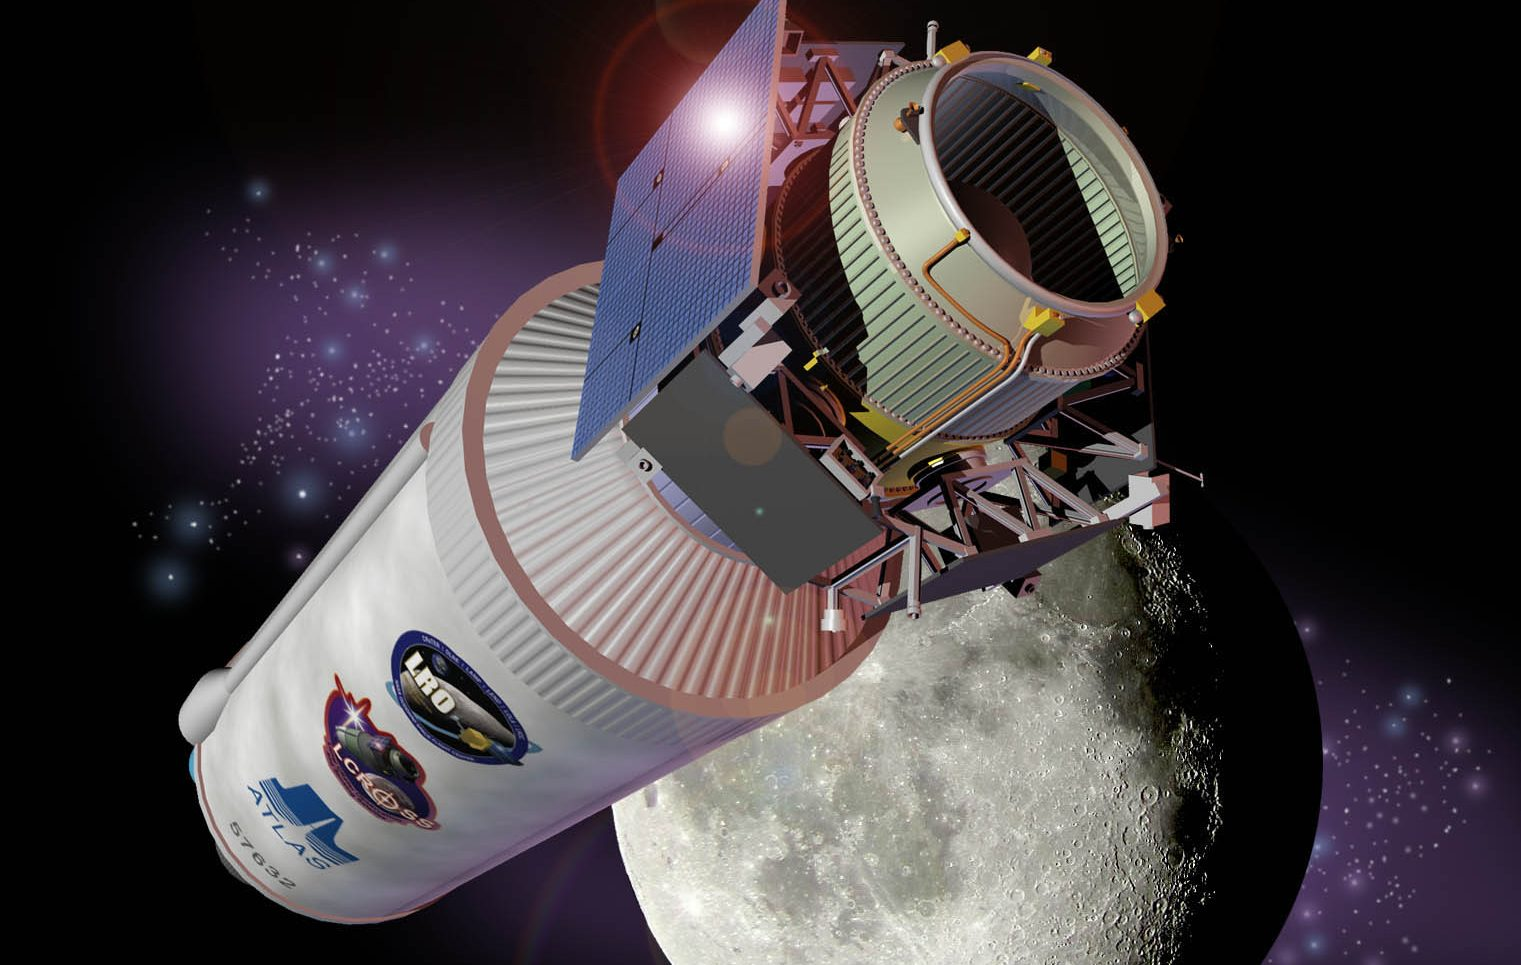 This Week in Space History 2009 – LCROSS Launched to the Moon